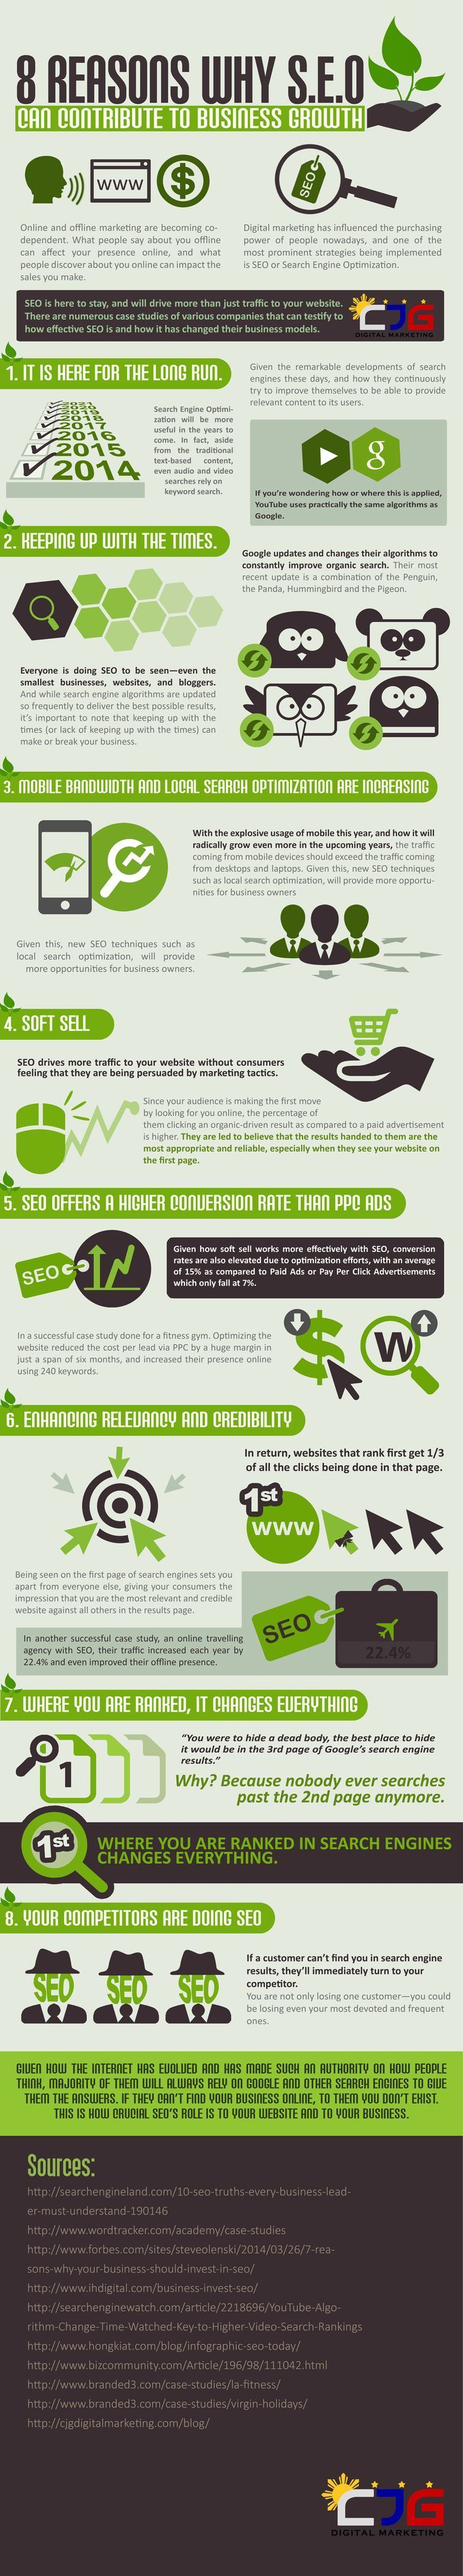 SEO & SEM (Search Engine Optimization, Search Engine